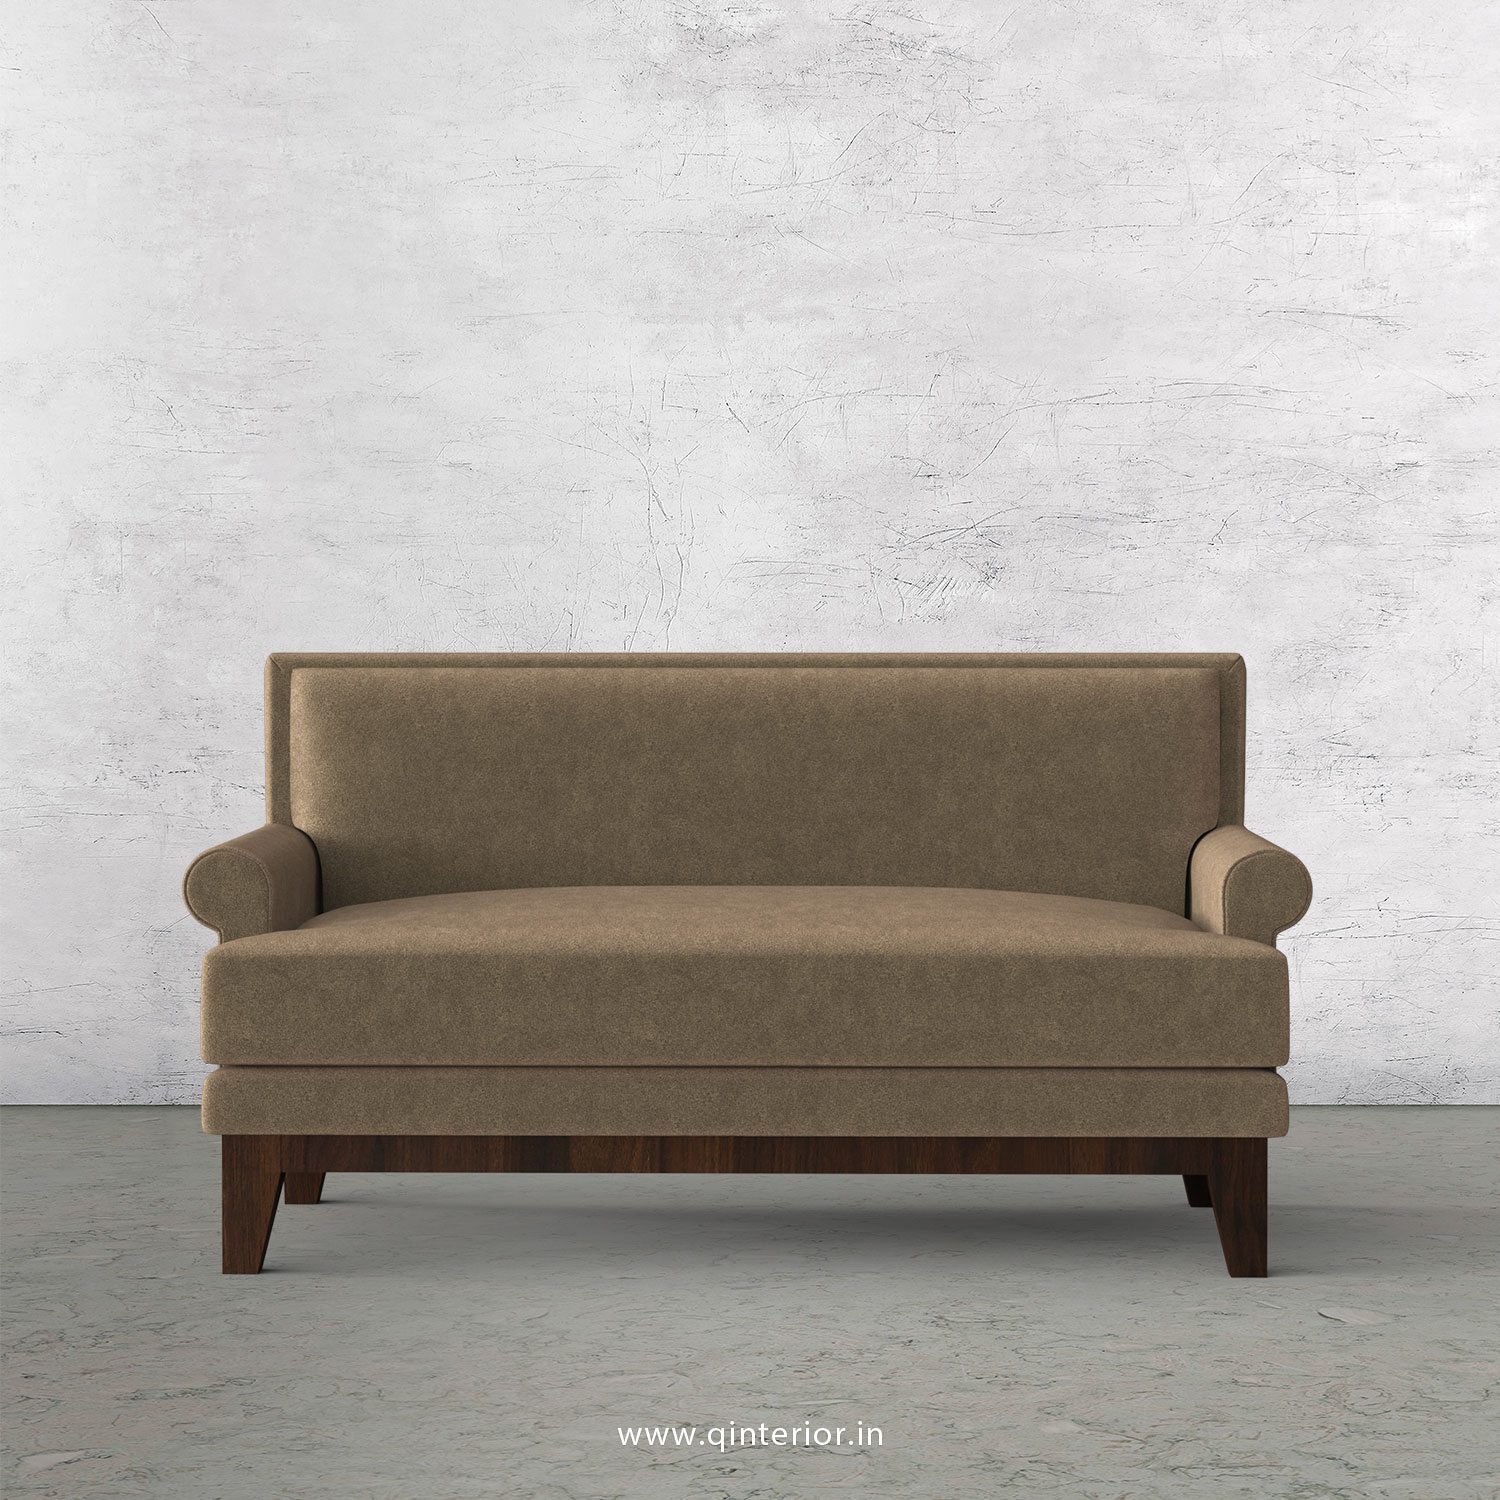 Aviana 2 Seater Sofa in Velvet Fabric - SFA001 VL11